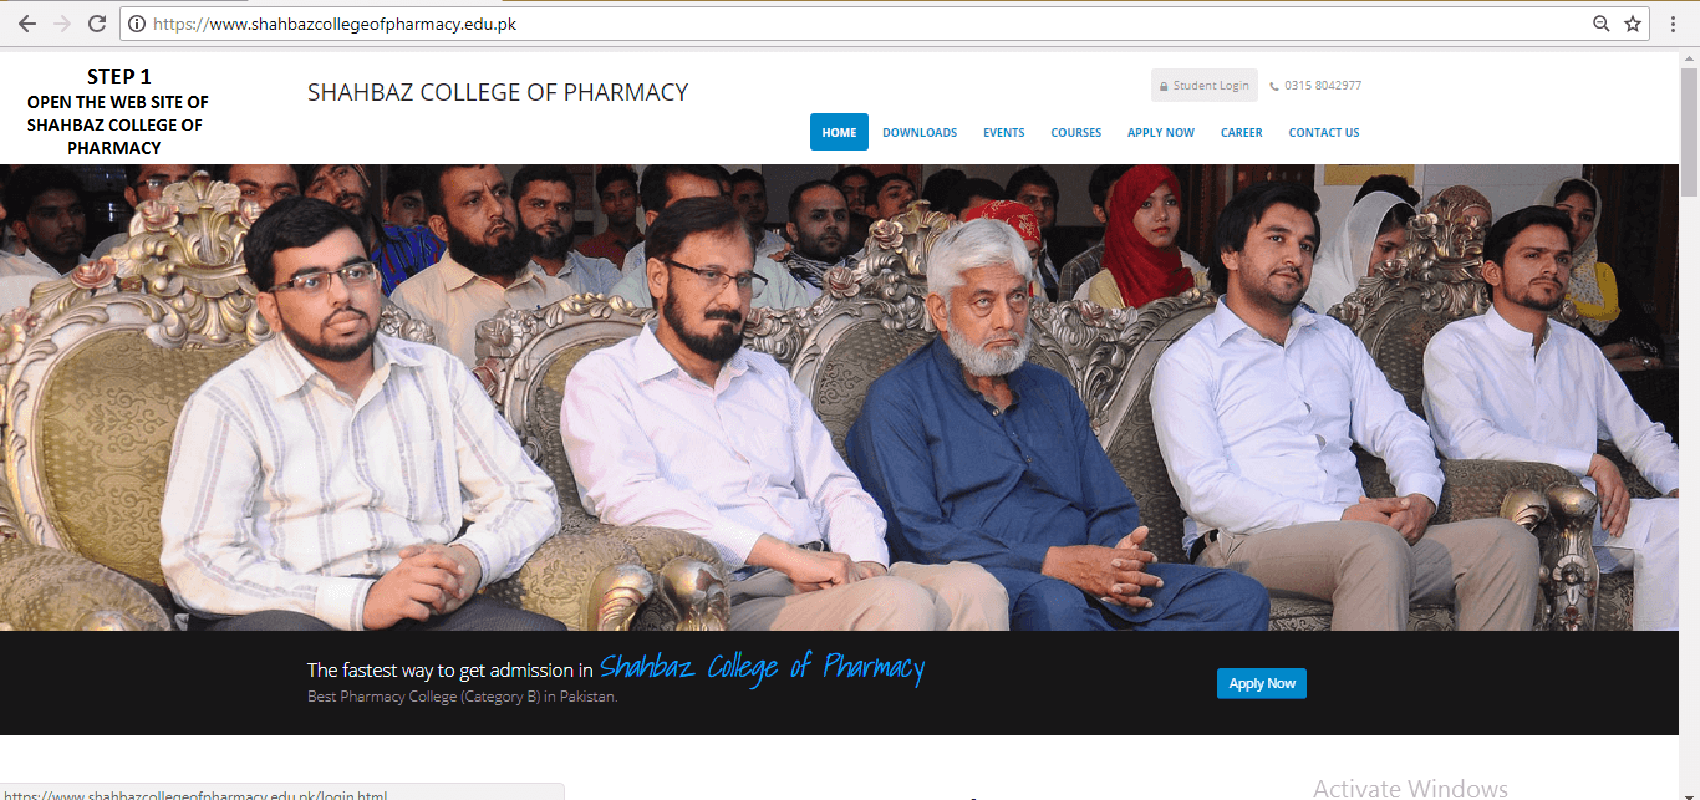 SHAHBAZ COLLEGE OF PHARMACY ONLINE PHARMACY TECHNICIAN STUDY STEP 1